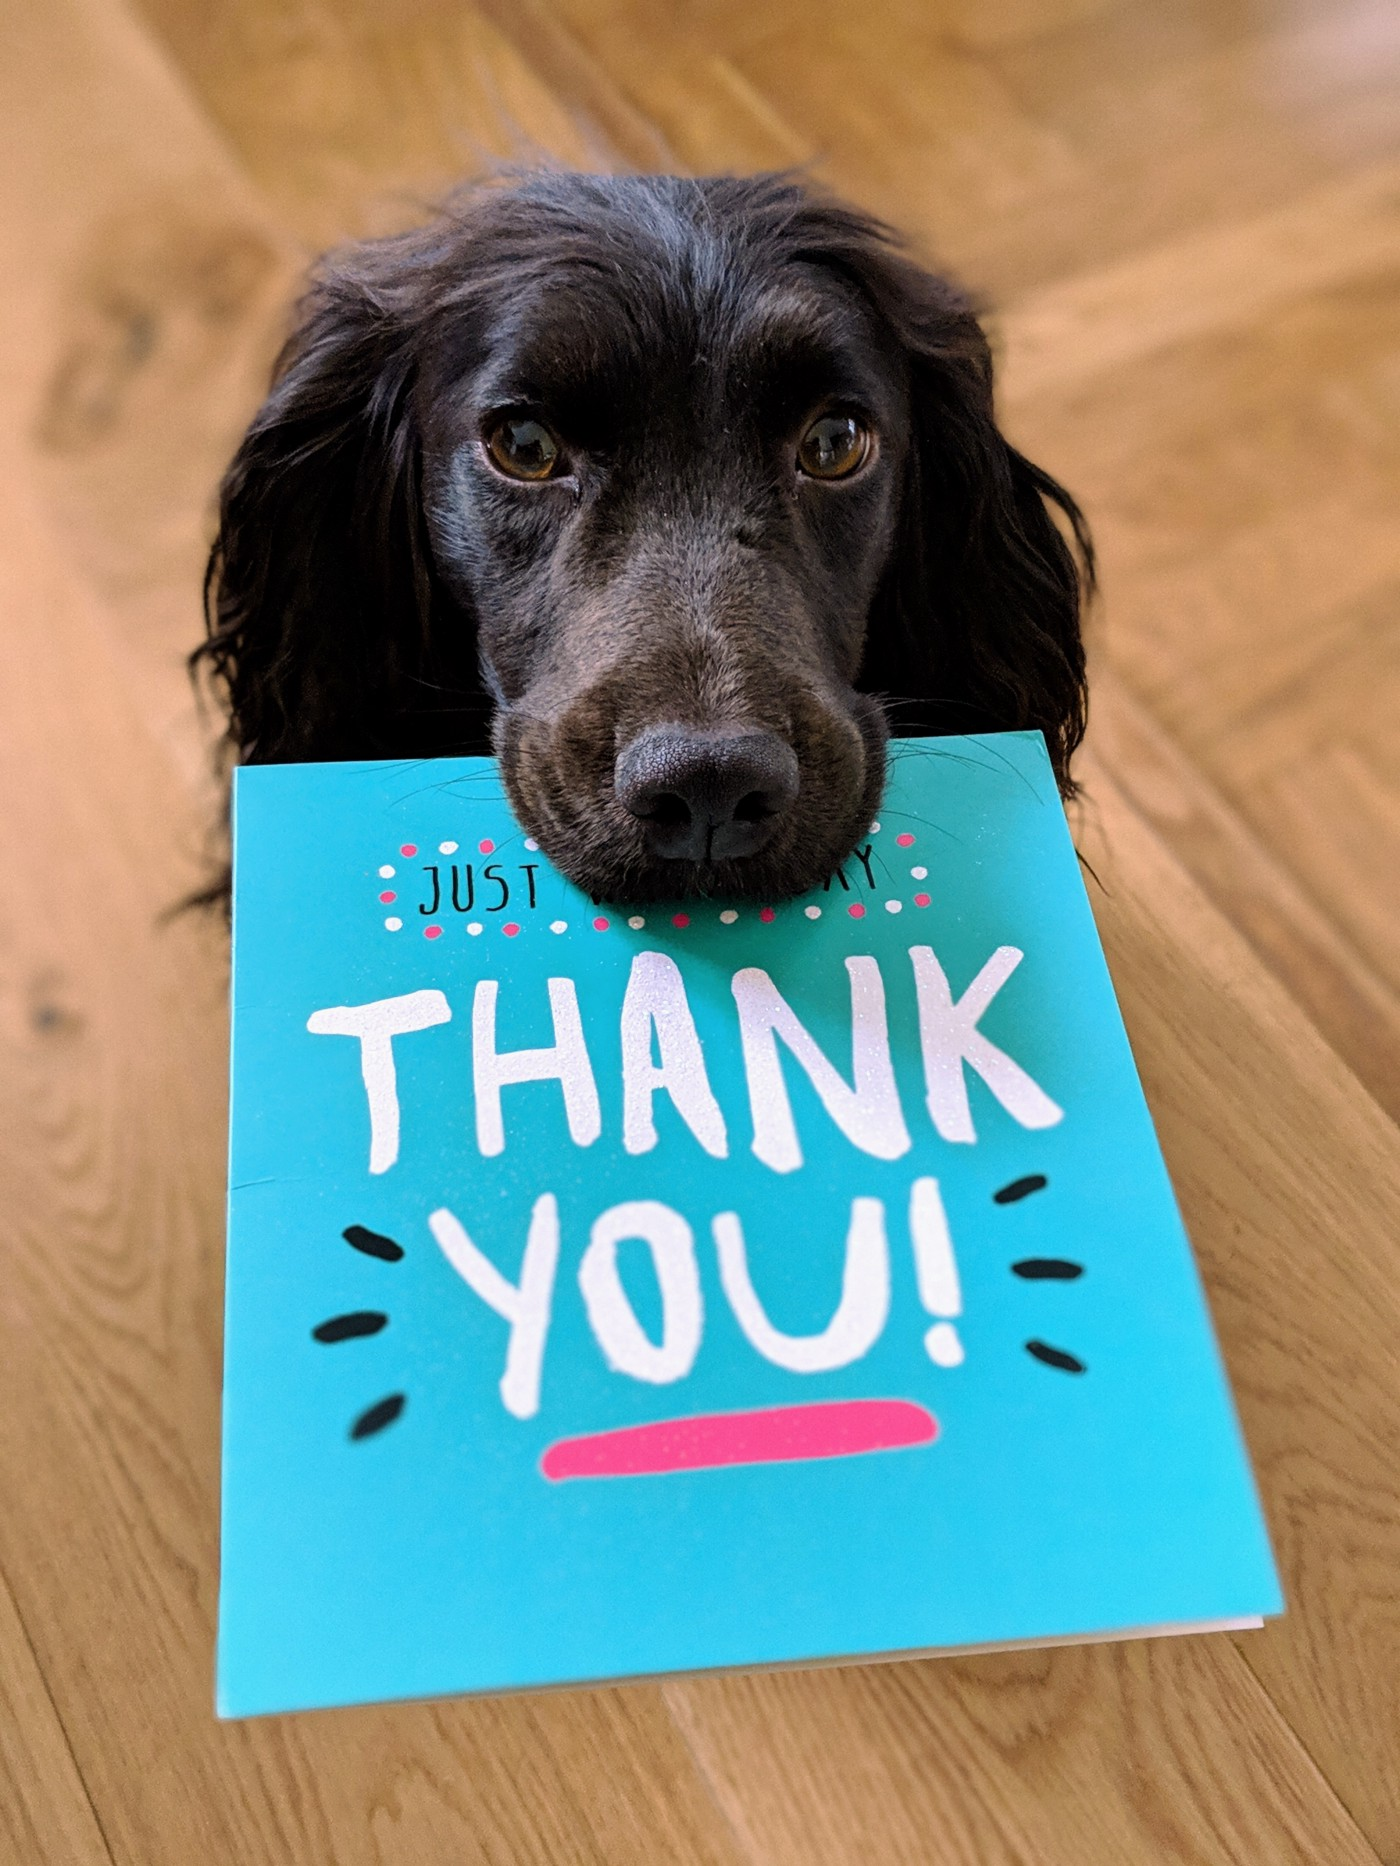 A black dog holds a thank you card